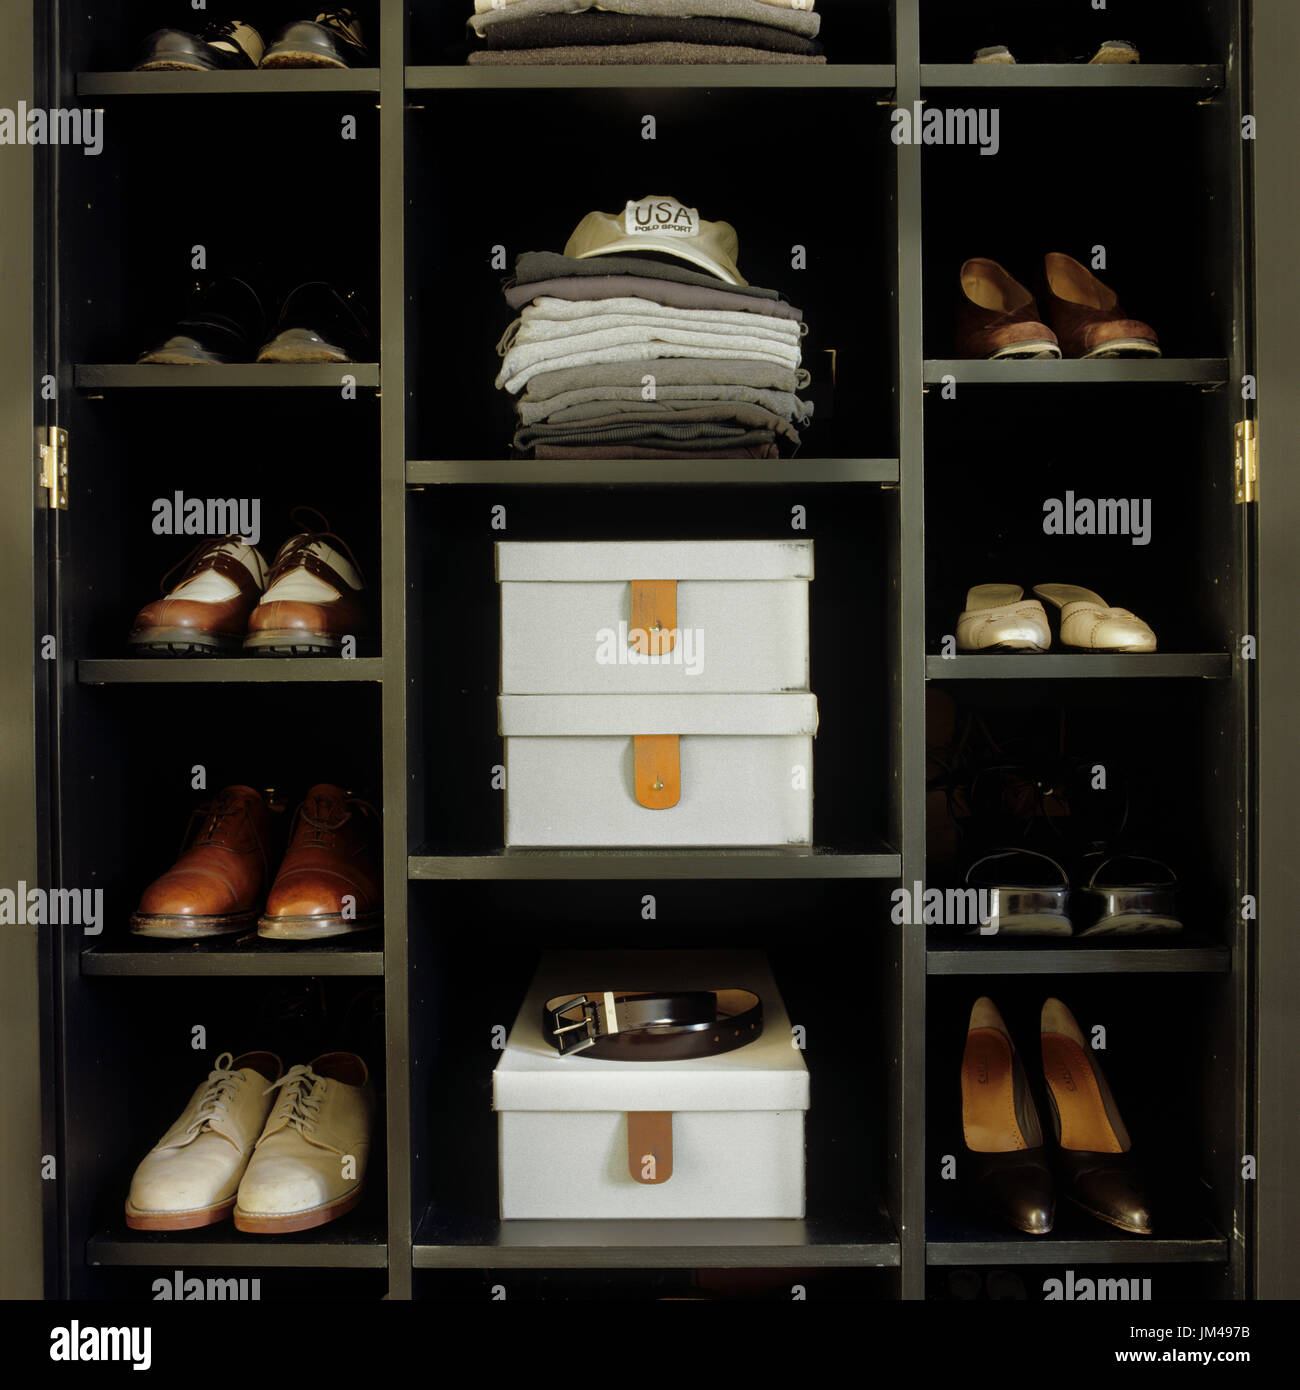 Shoes and clothing in closet - Stock Image